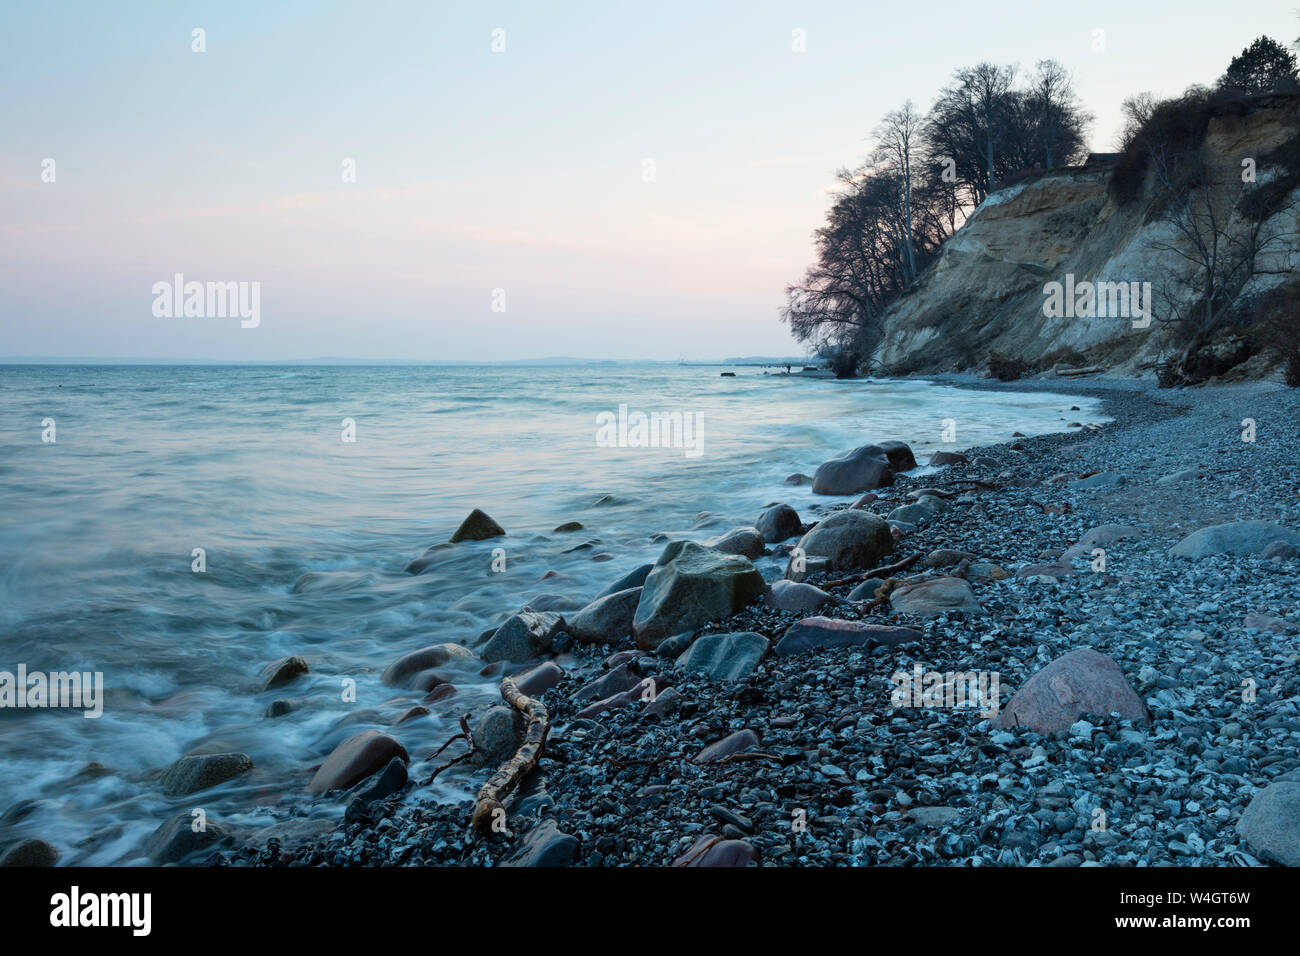 Chalk coast at dusk, Jasmund National Park, Ruegen, Germany Stock Photo